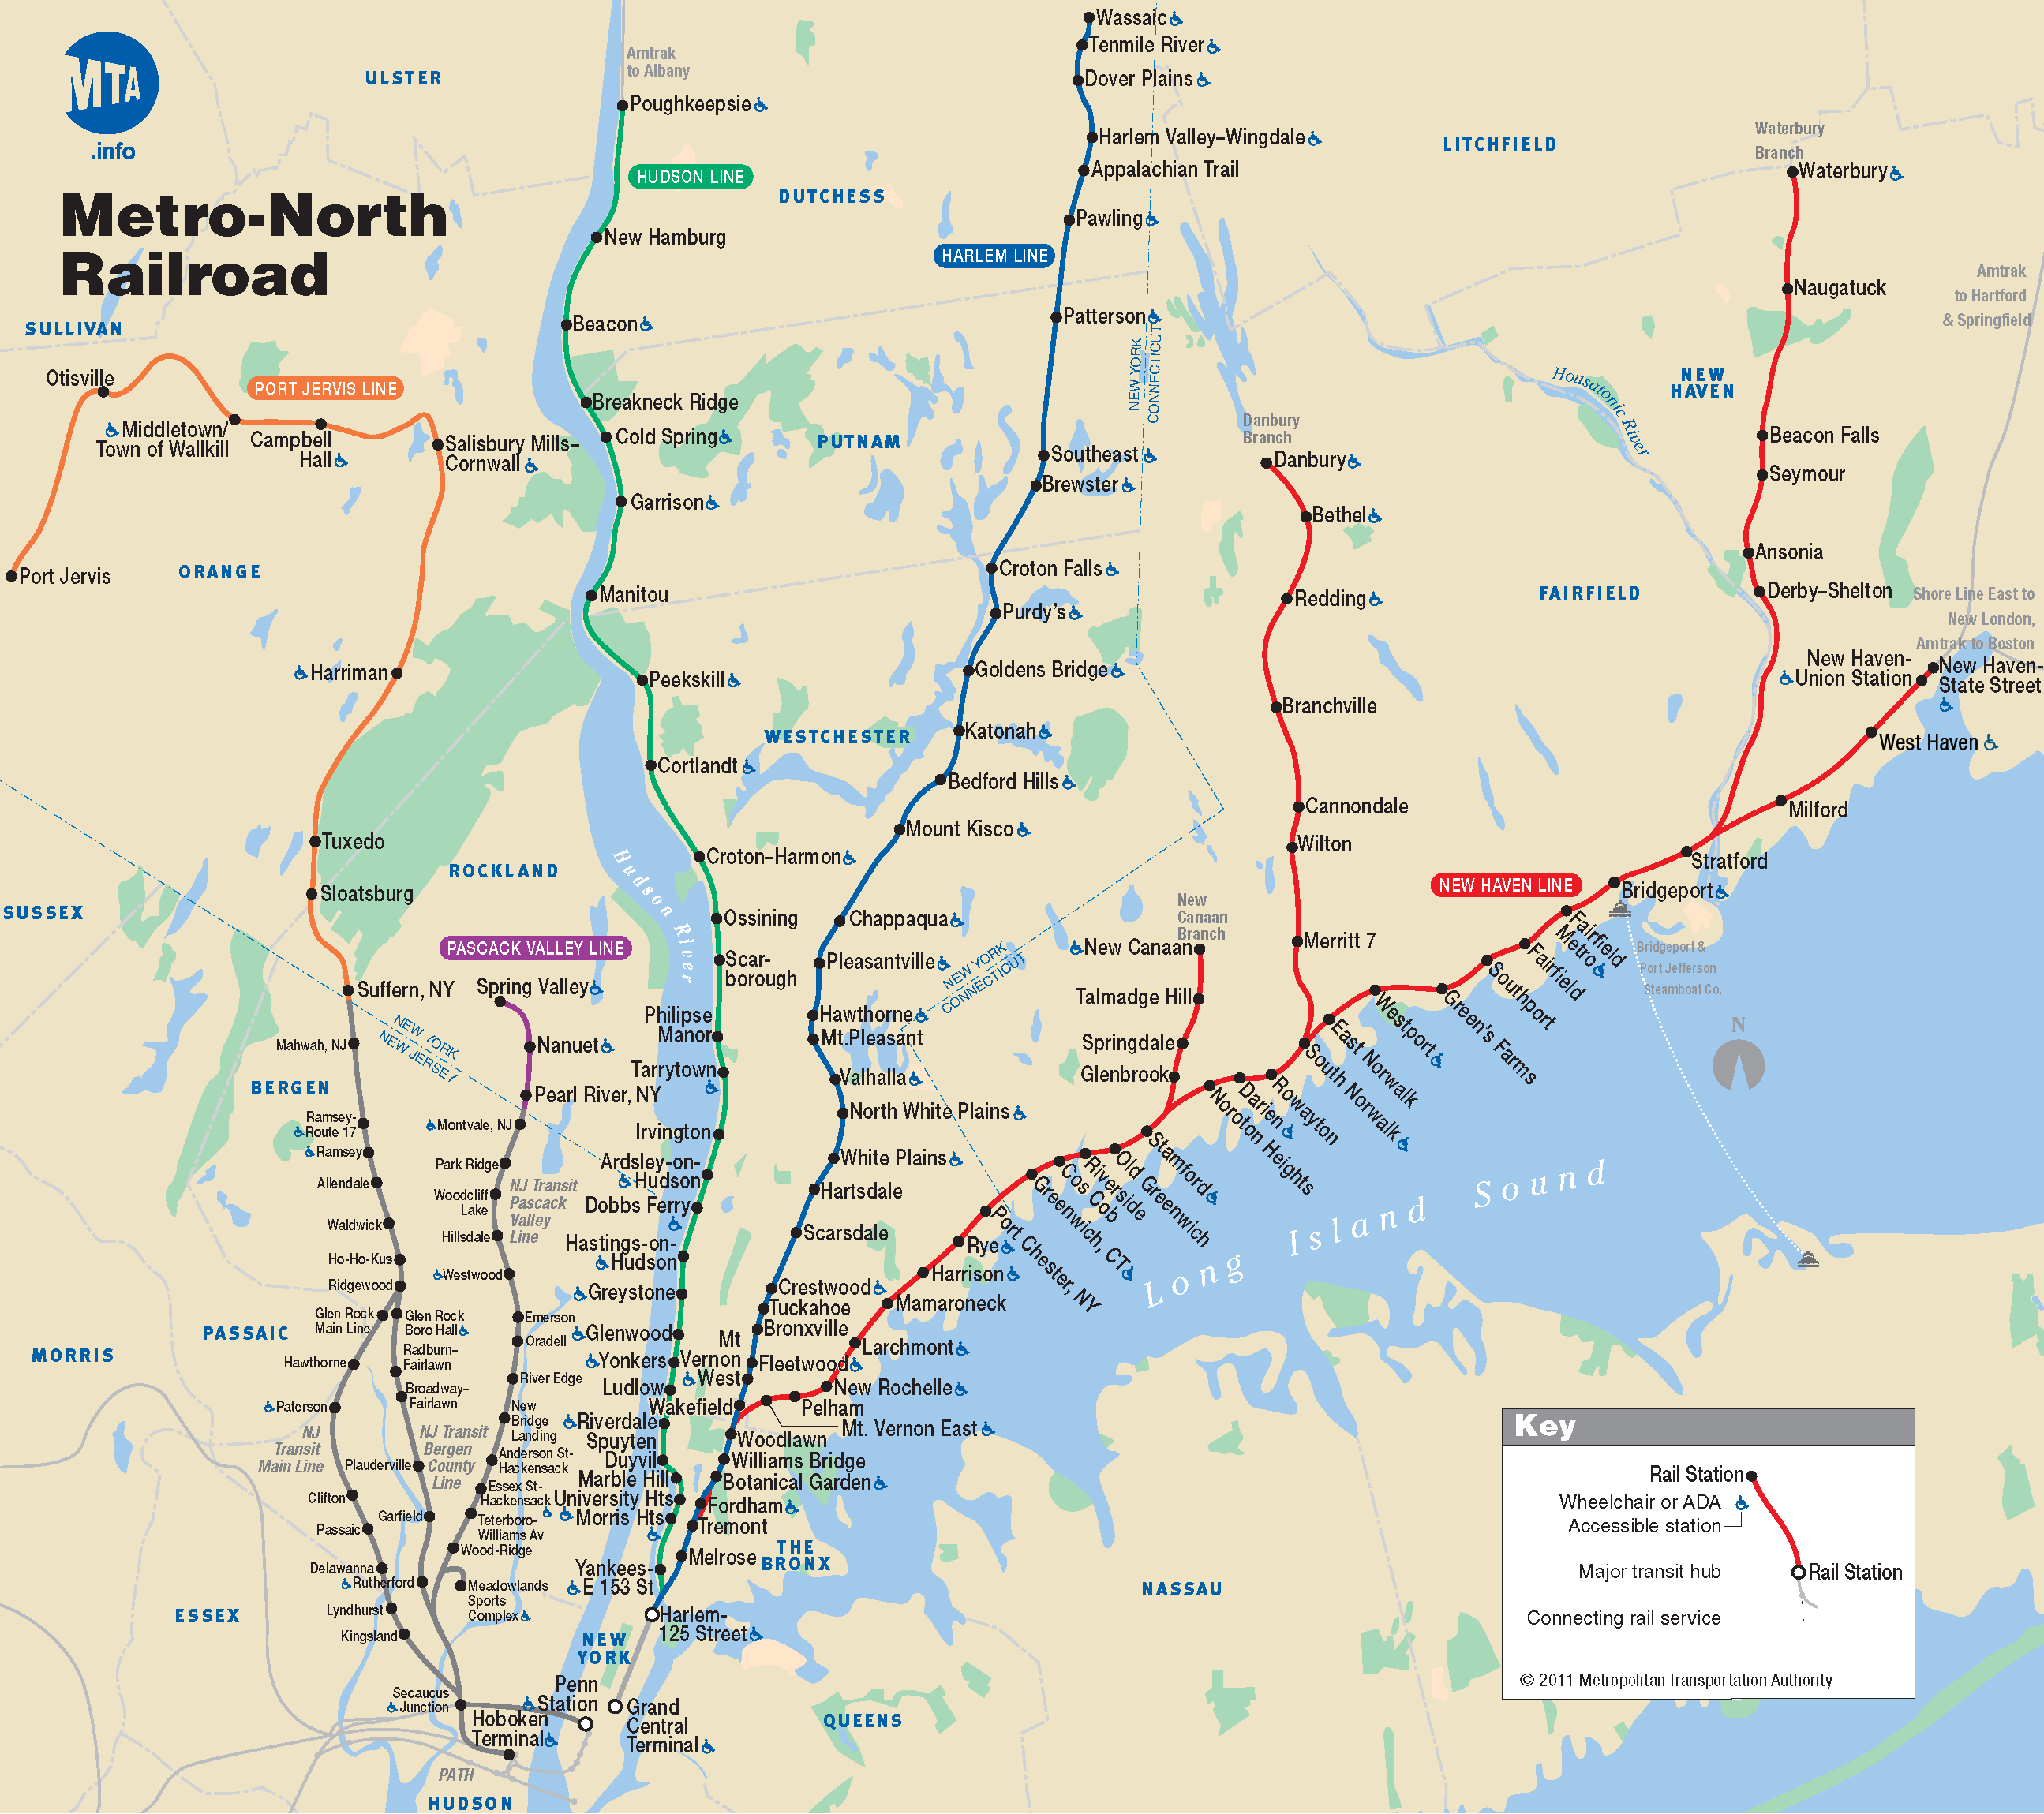 Metro North Map For New York City For Commuting Information From - Chicago amtrak map